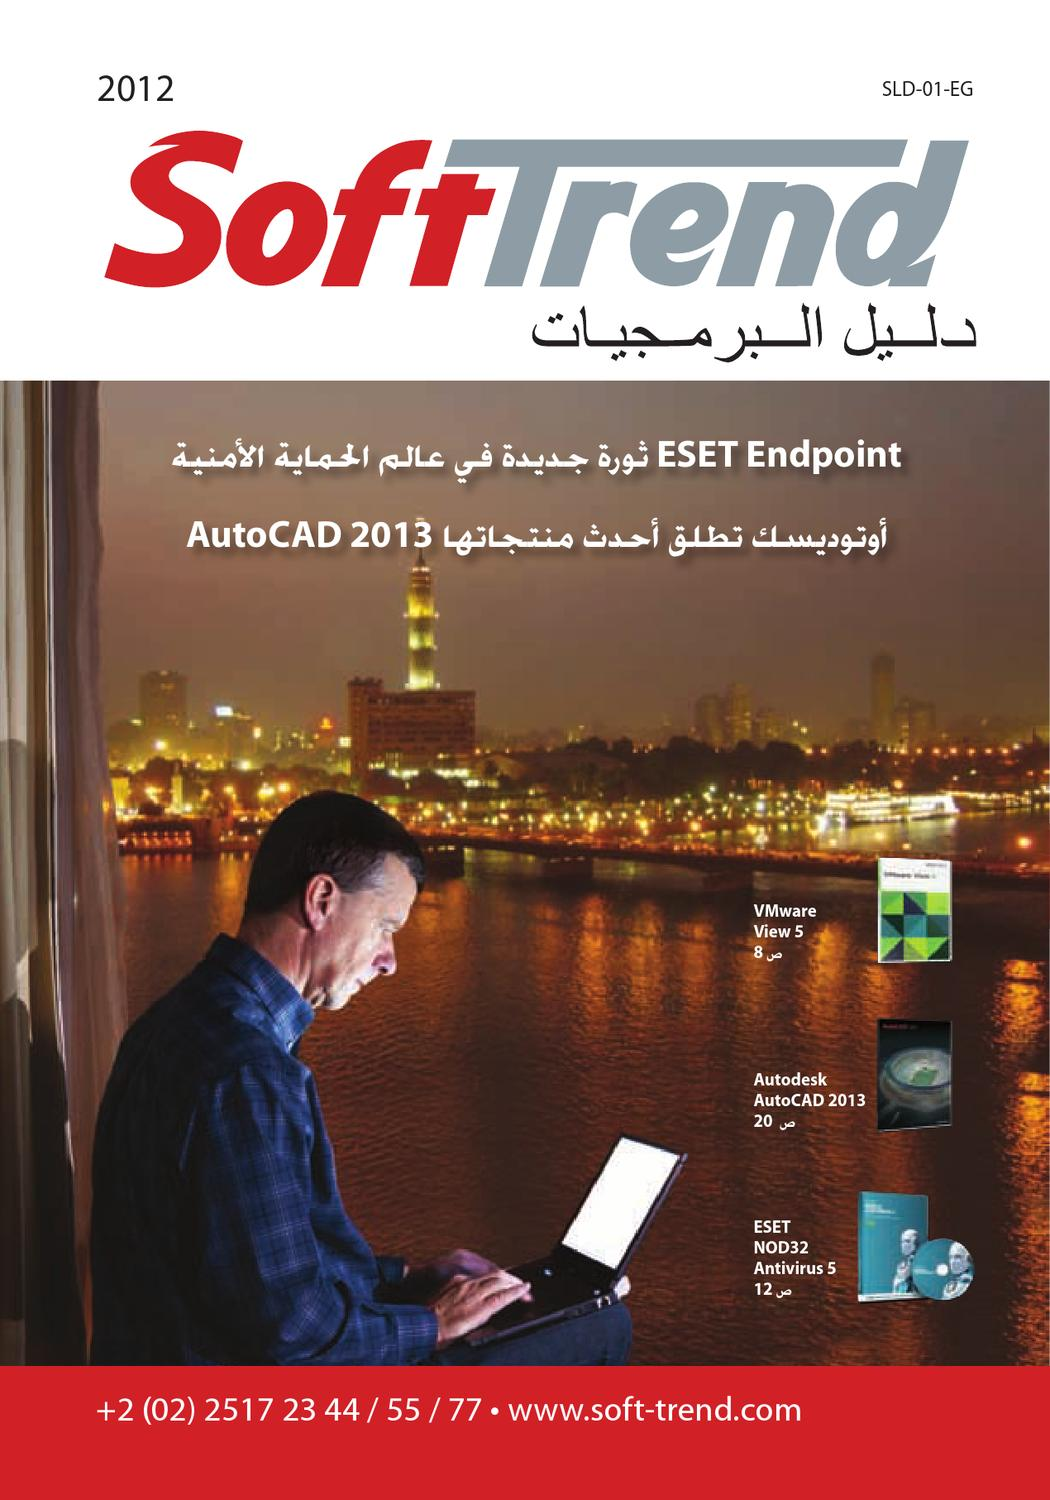 91e8e3bce1715 SoftTrend 2012 by SoftTrend - issuu